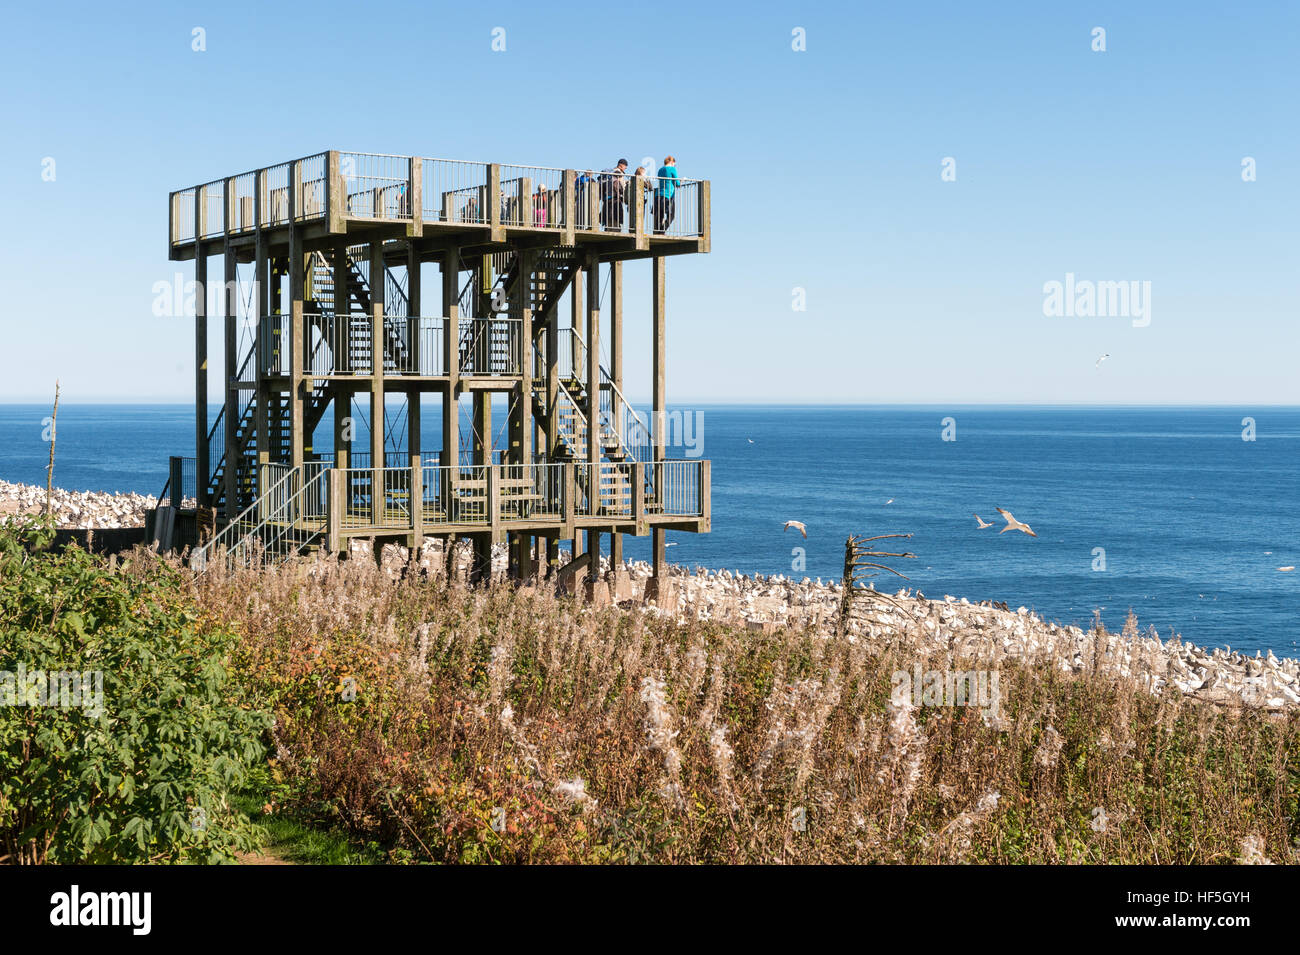 Northern gannet colony and observation tower on Bonaventure Island, Quebec, Canada - Stock Image